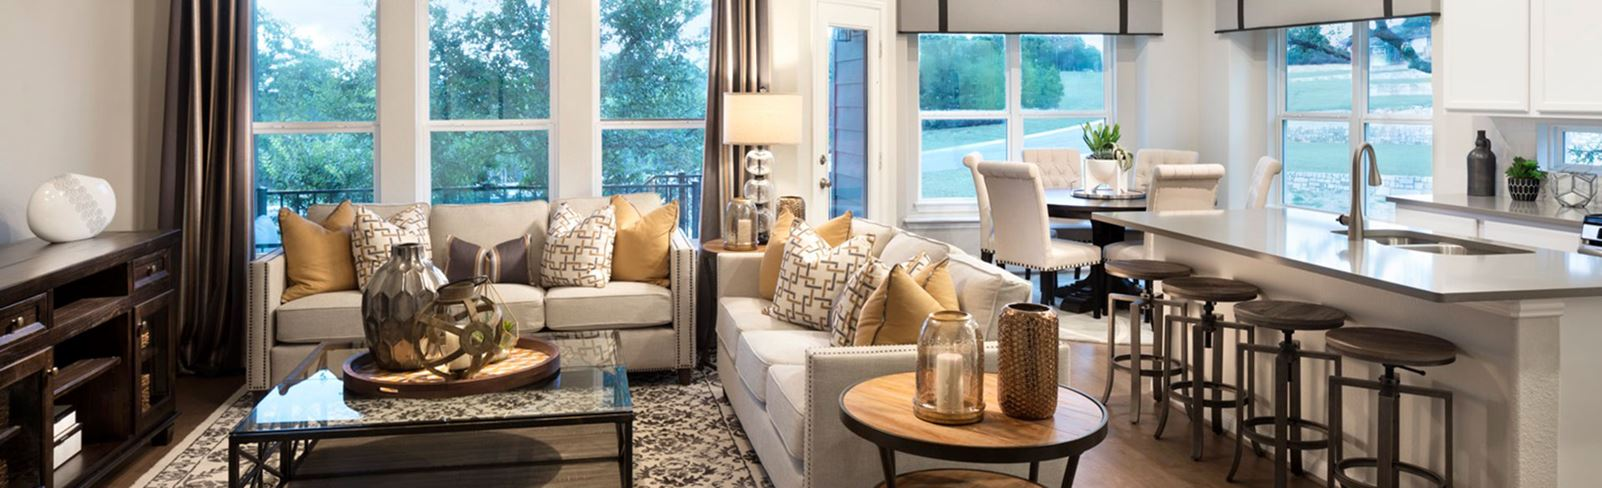 rancho-sienna-lennar-giallo-model-home-living.jpg